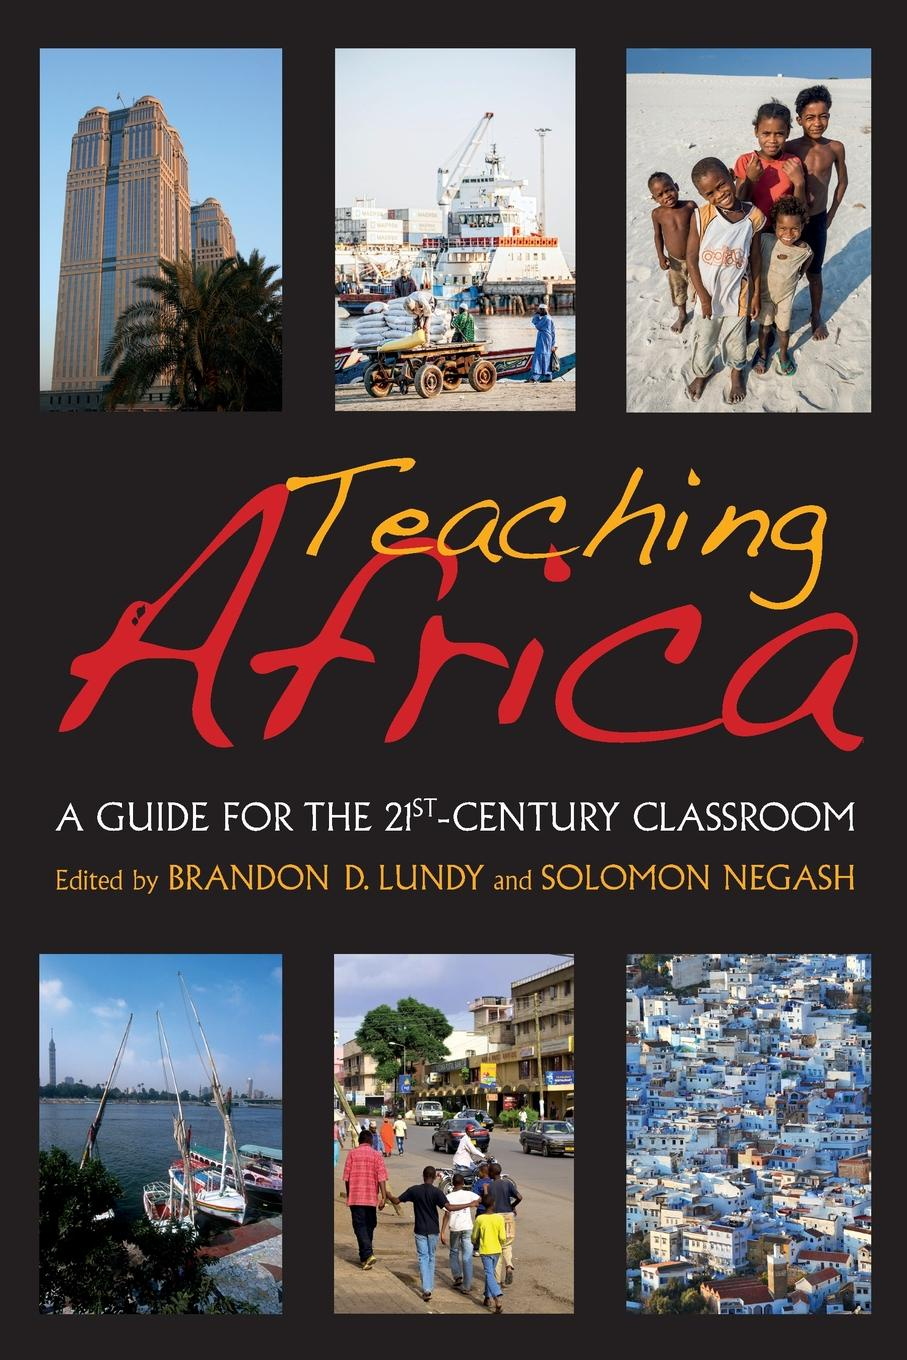 Teaching Africa. A Guide for the 21st-Century Classroom john shook r the god debates a 21st century guide for atheists and believers and everyone in between